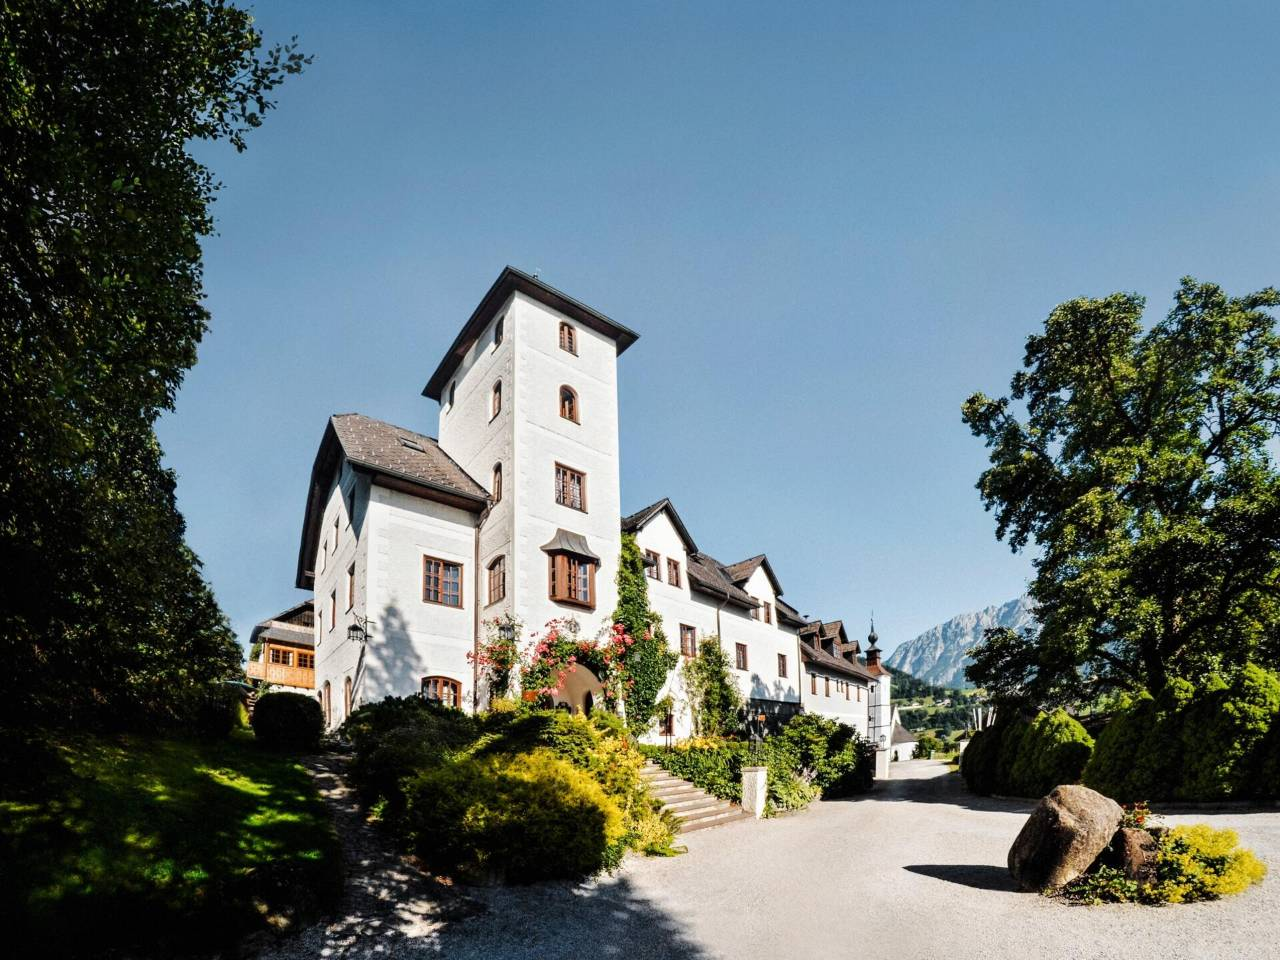 Location: Hotel Schloss Thannegg - Moosheim